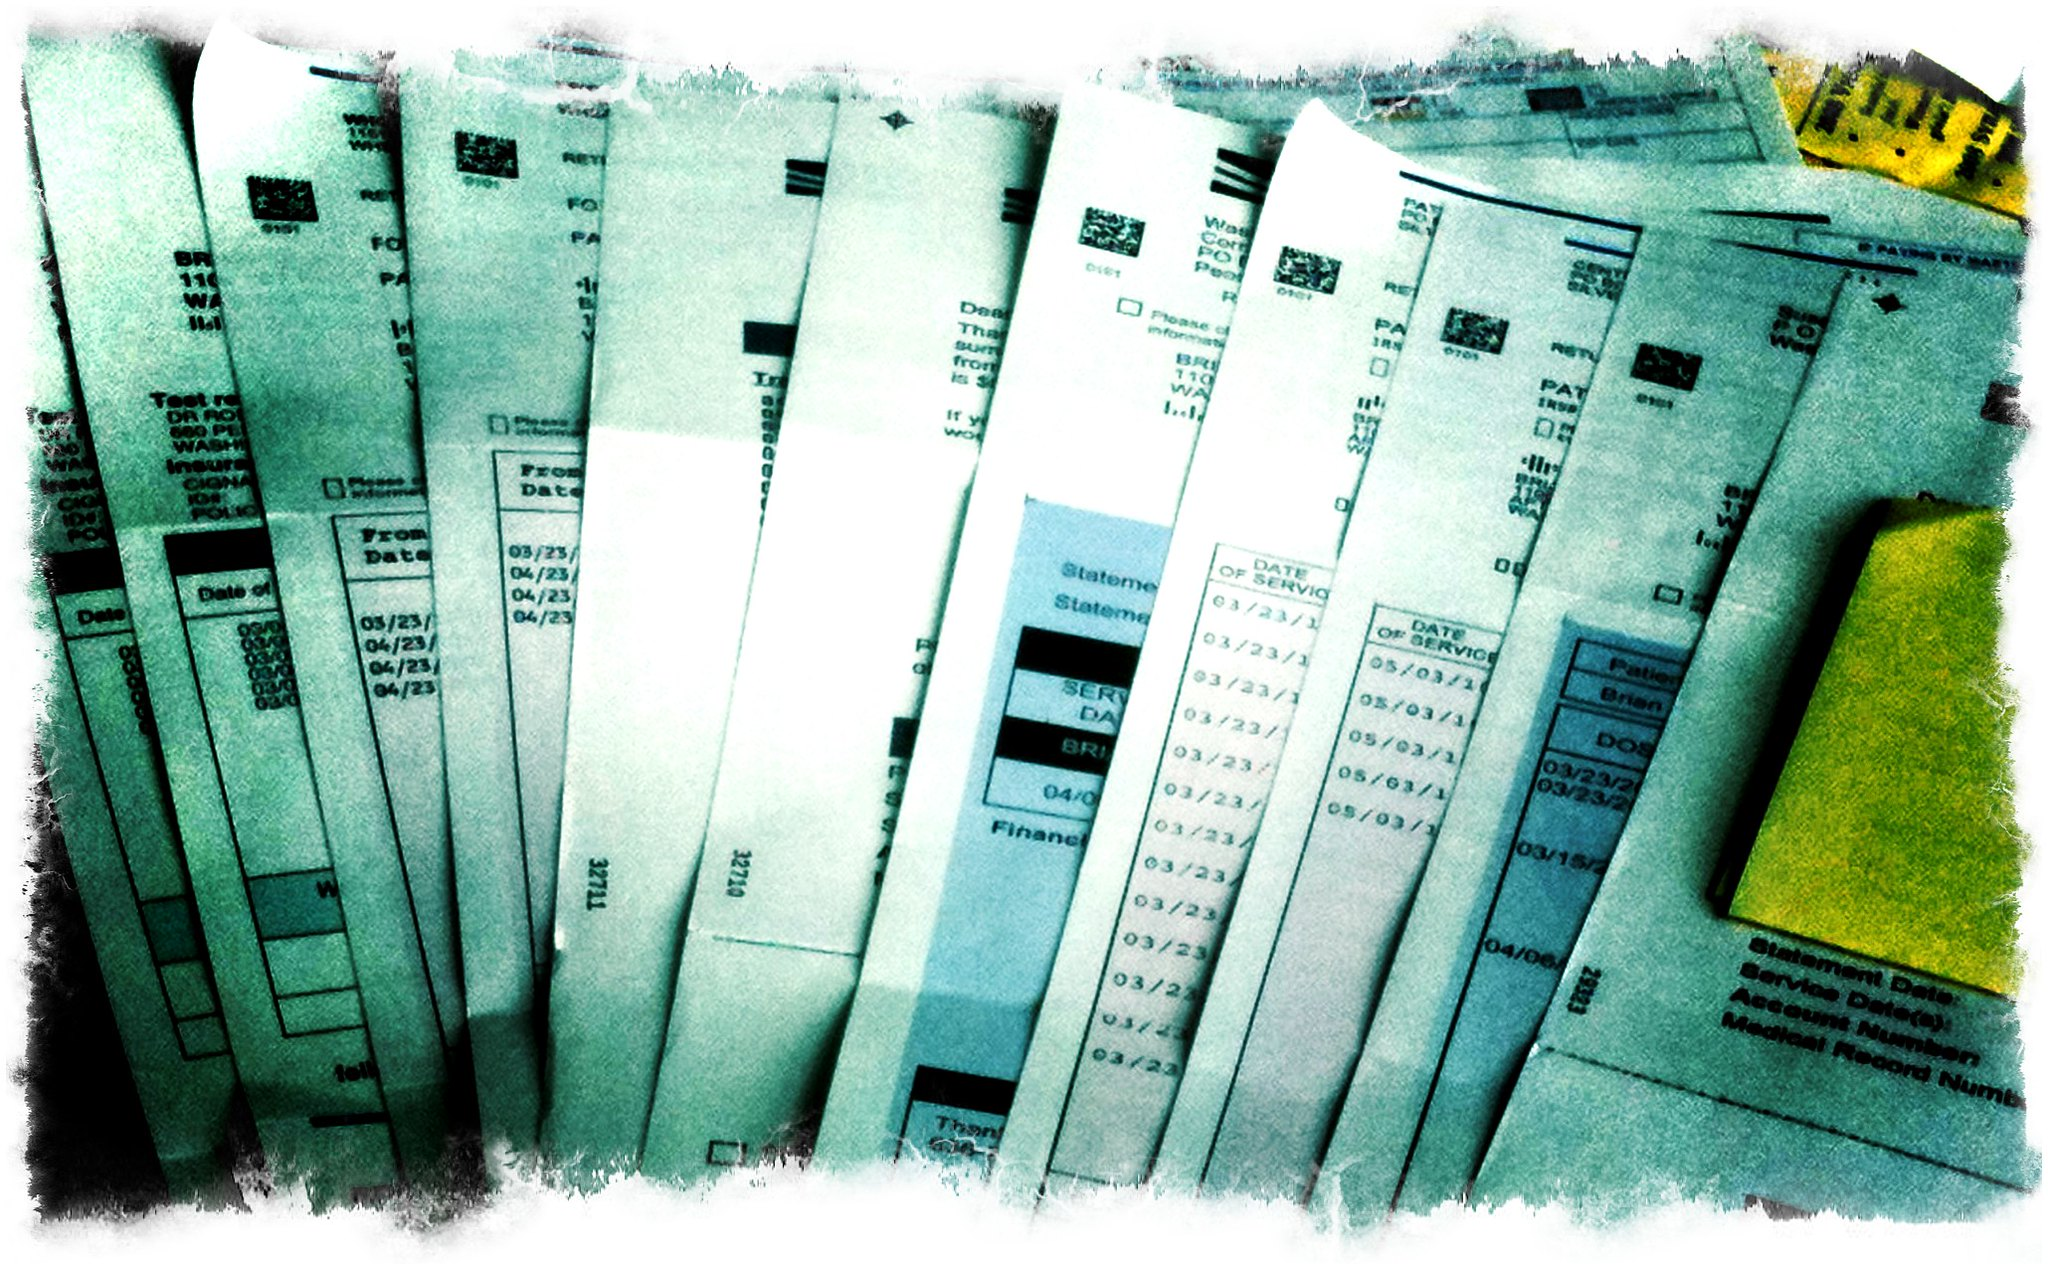 Photo of medical bills received by Americans in debt